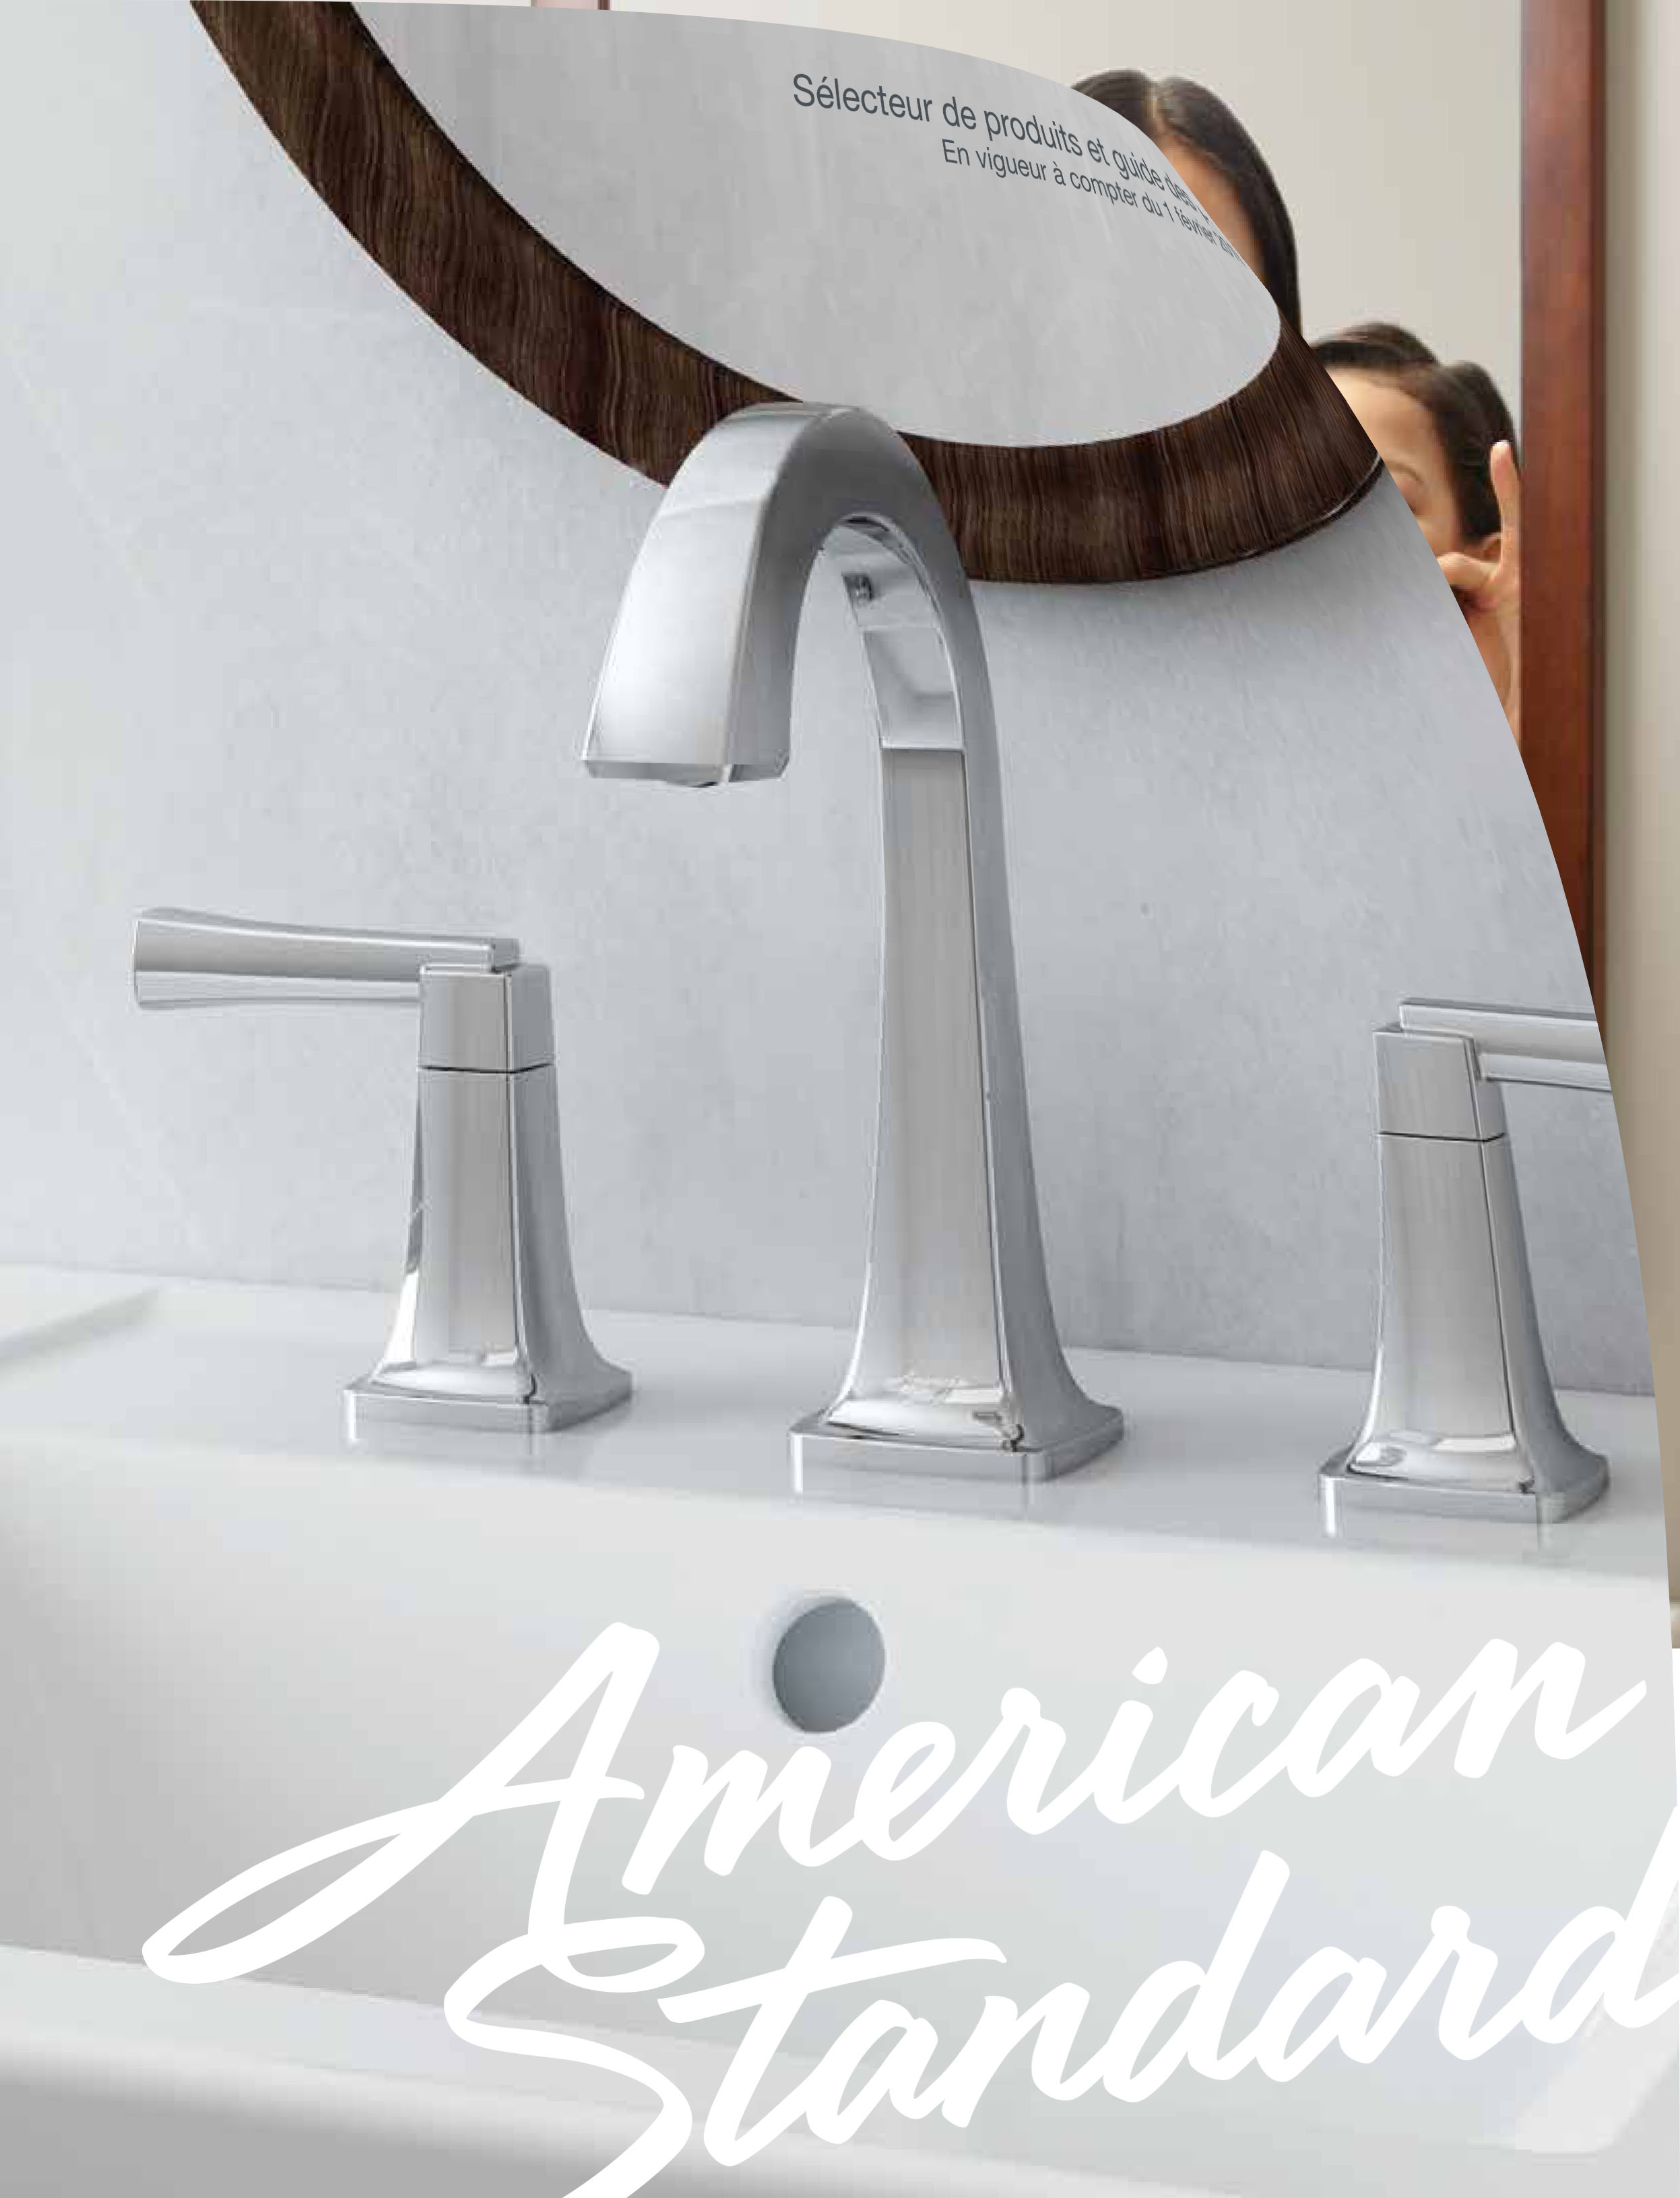 The American Standard Product Selector and Pricing Guide. Available in ENG and FRE languages.